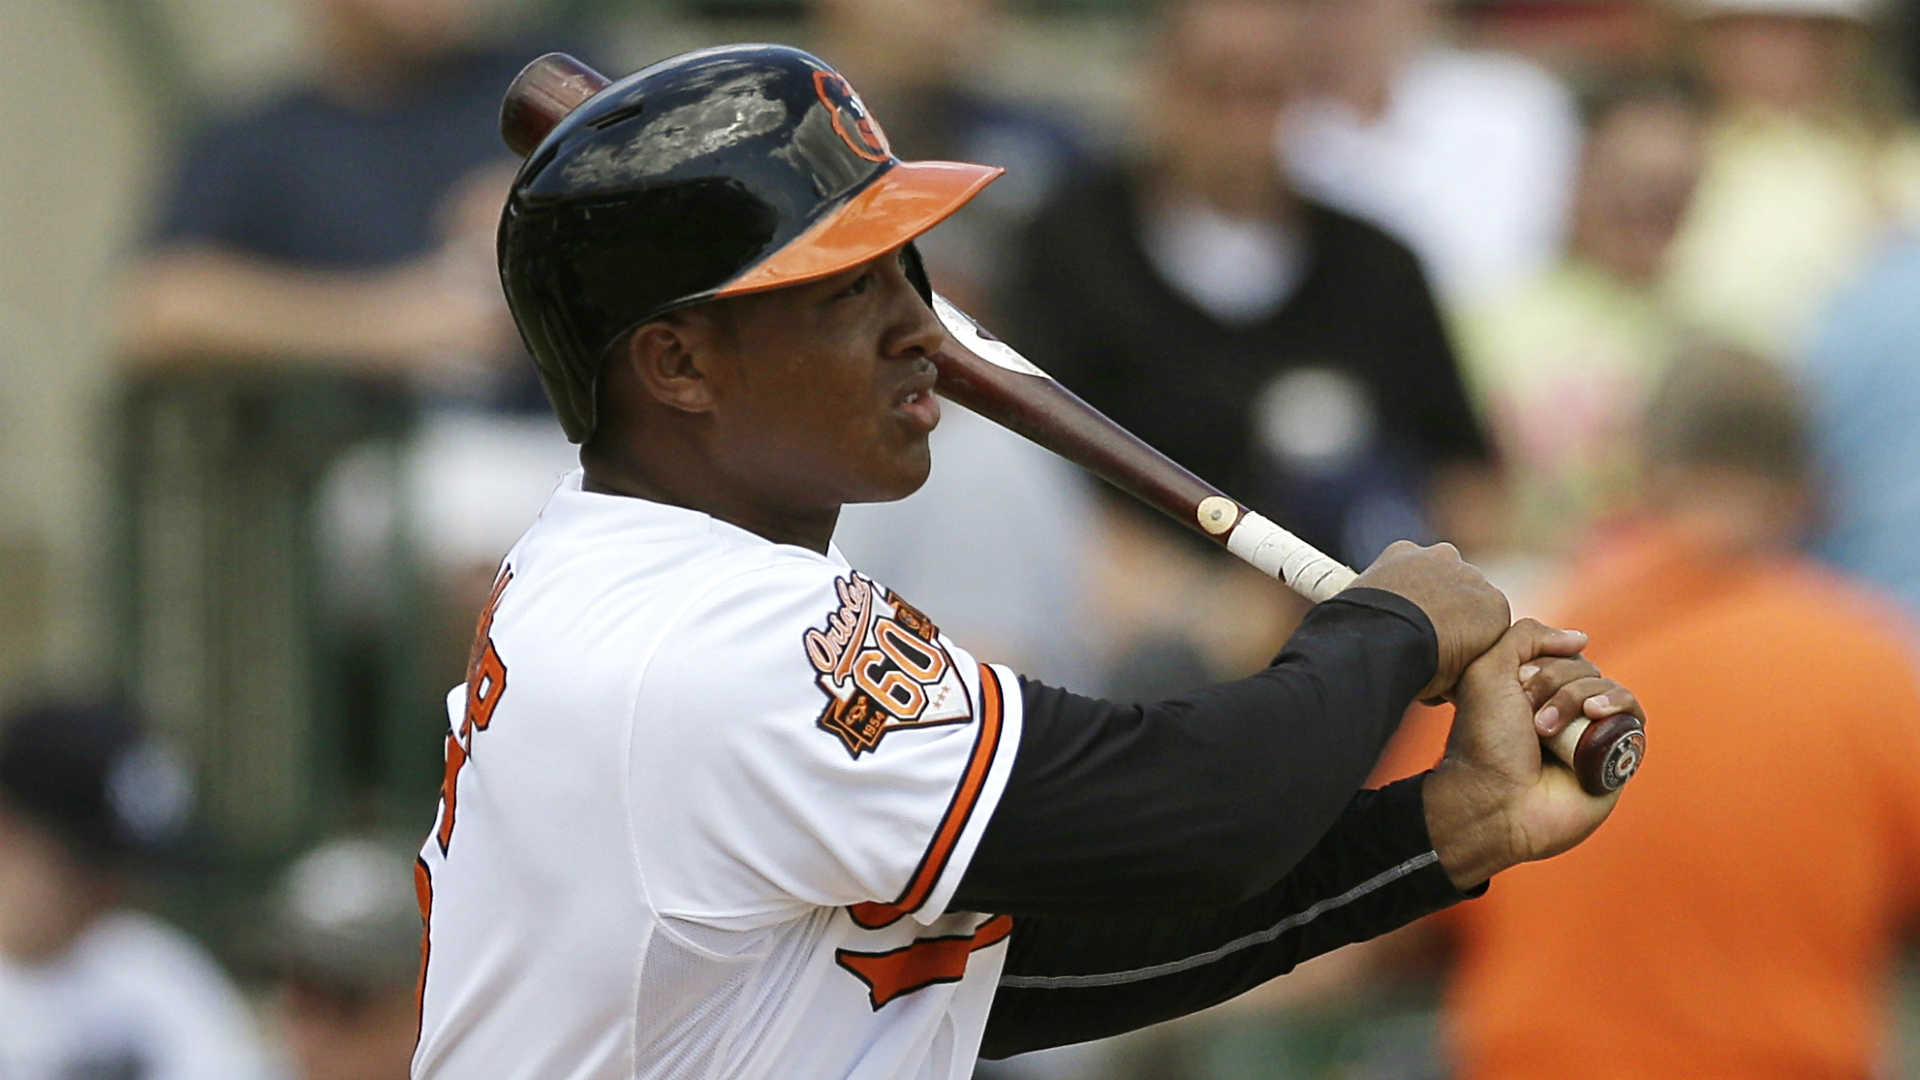 Get to Know: Orioles prospect Jonathan Schoop pushing for starting job